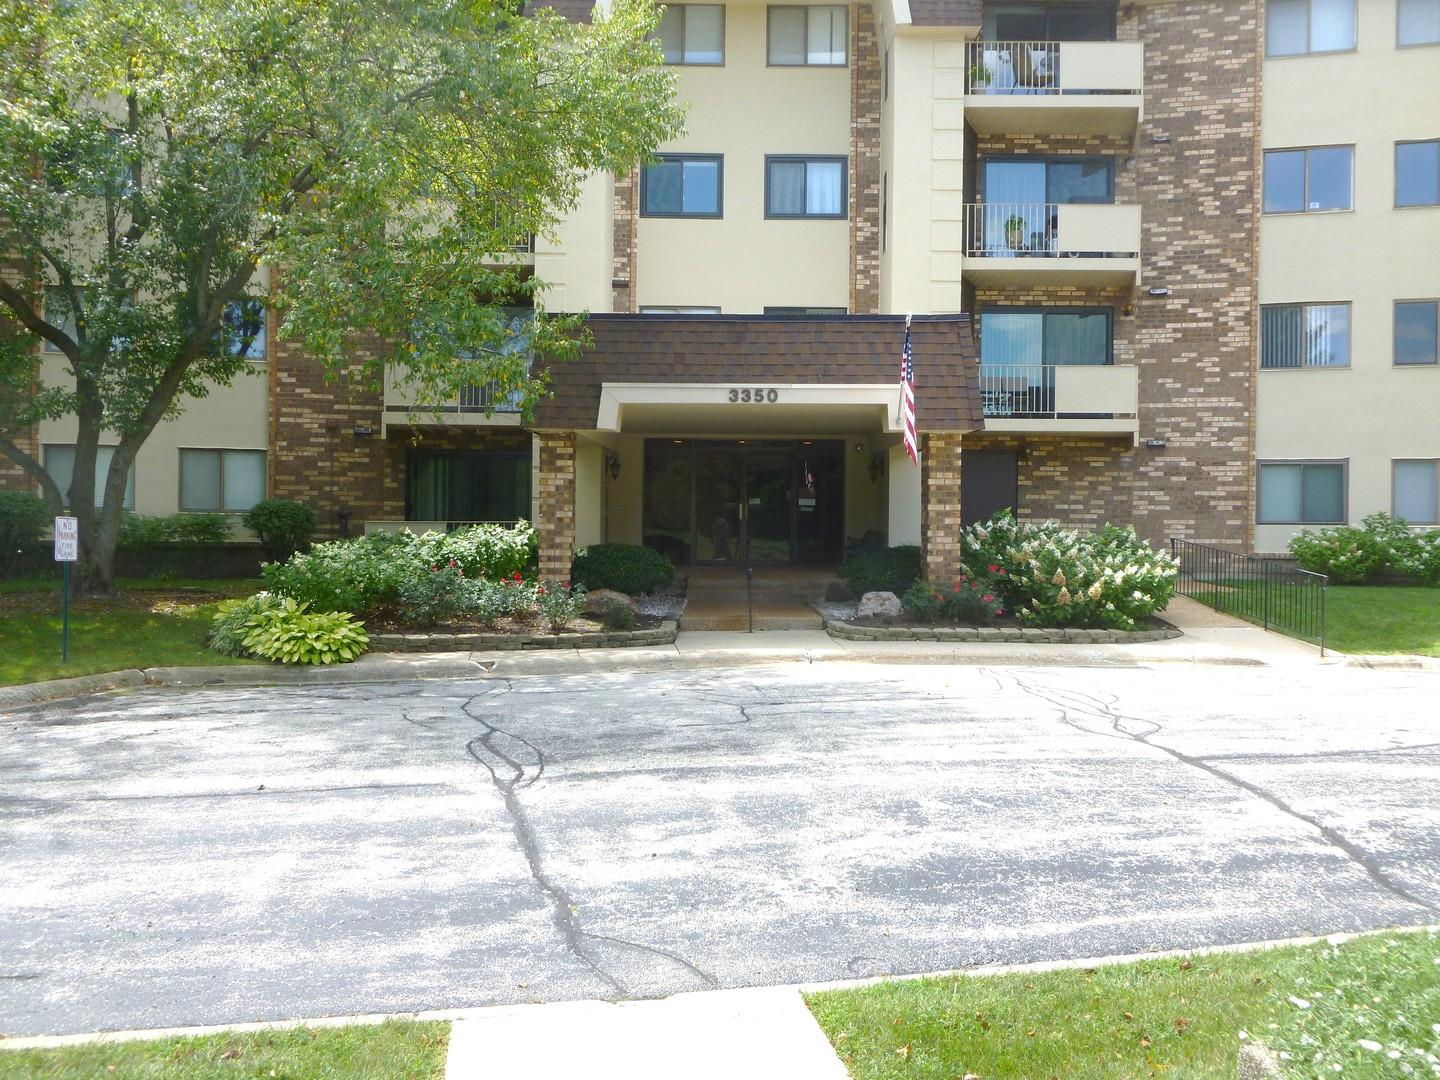 3350 N CARRIAGEWAY Drive #112, Arlington Heights, IL 60004 - #: 10821357